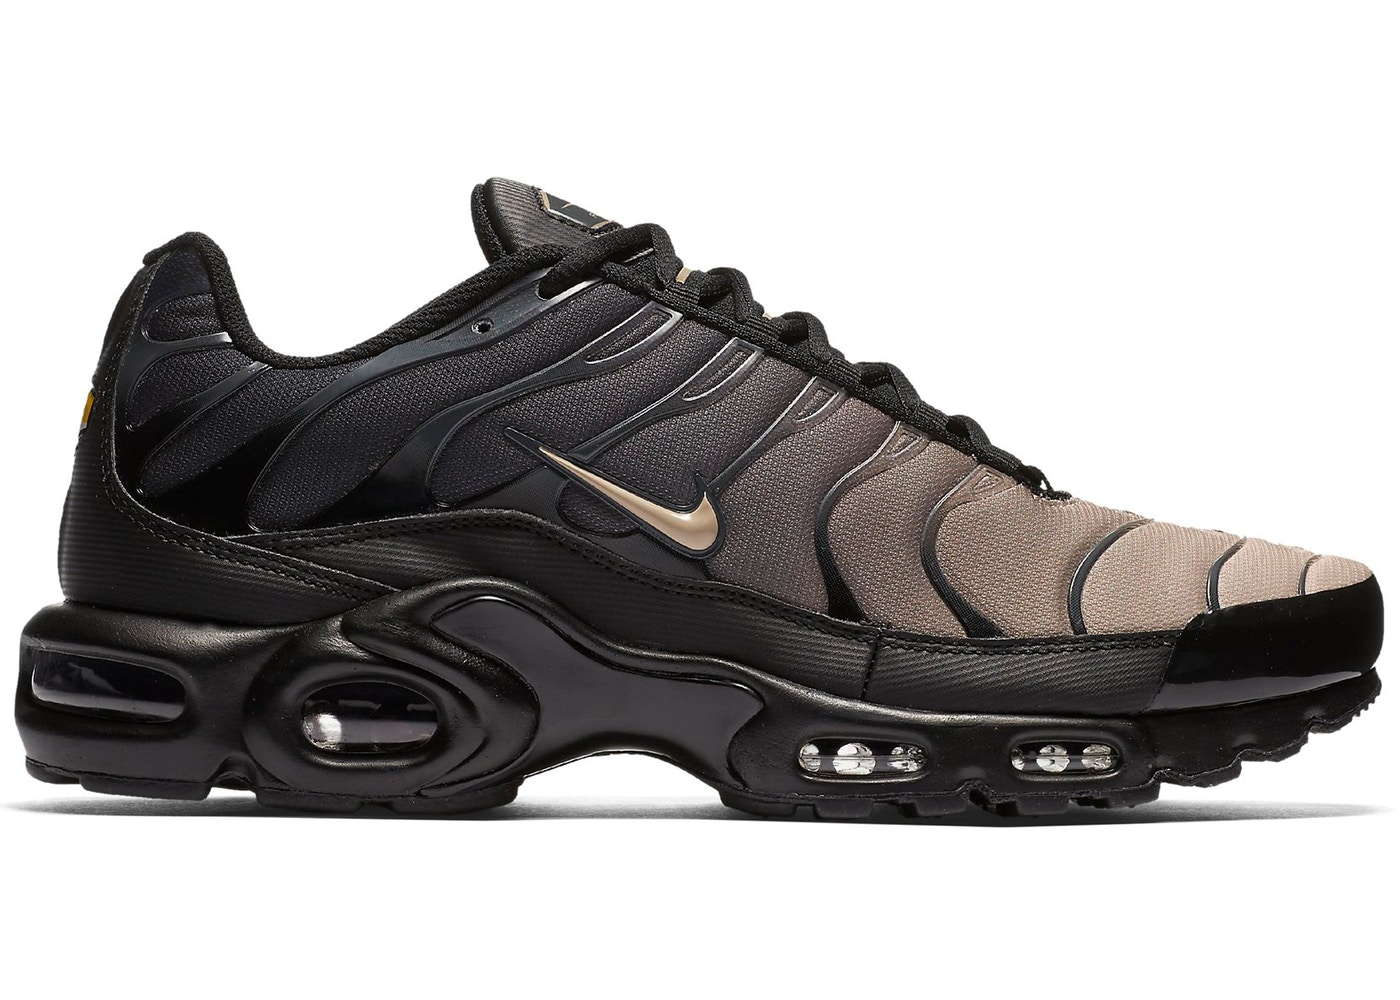 Air Max Plus Gradient Pack (Black) 852630 026